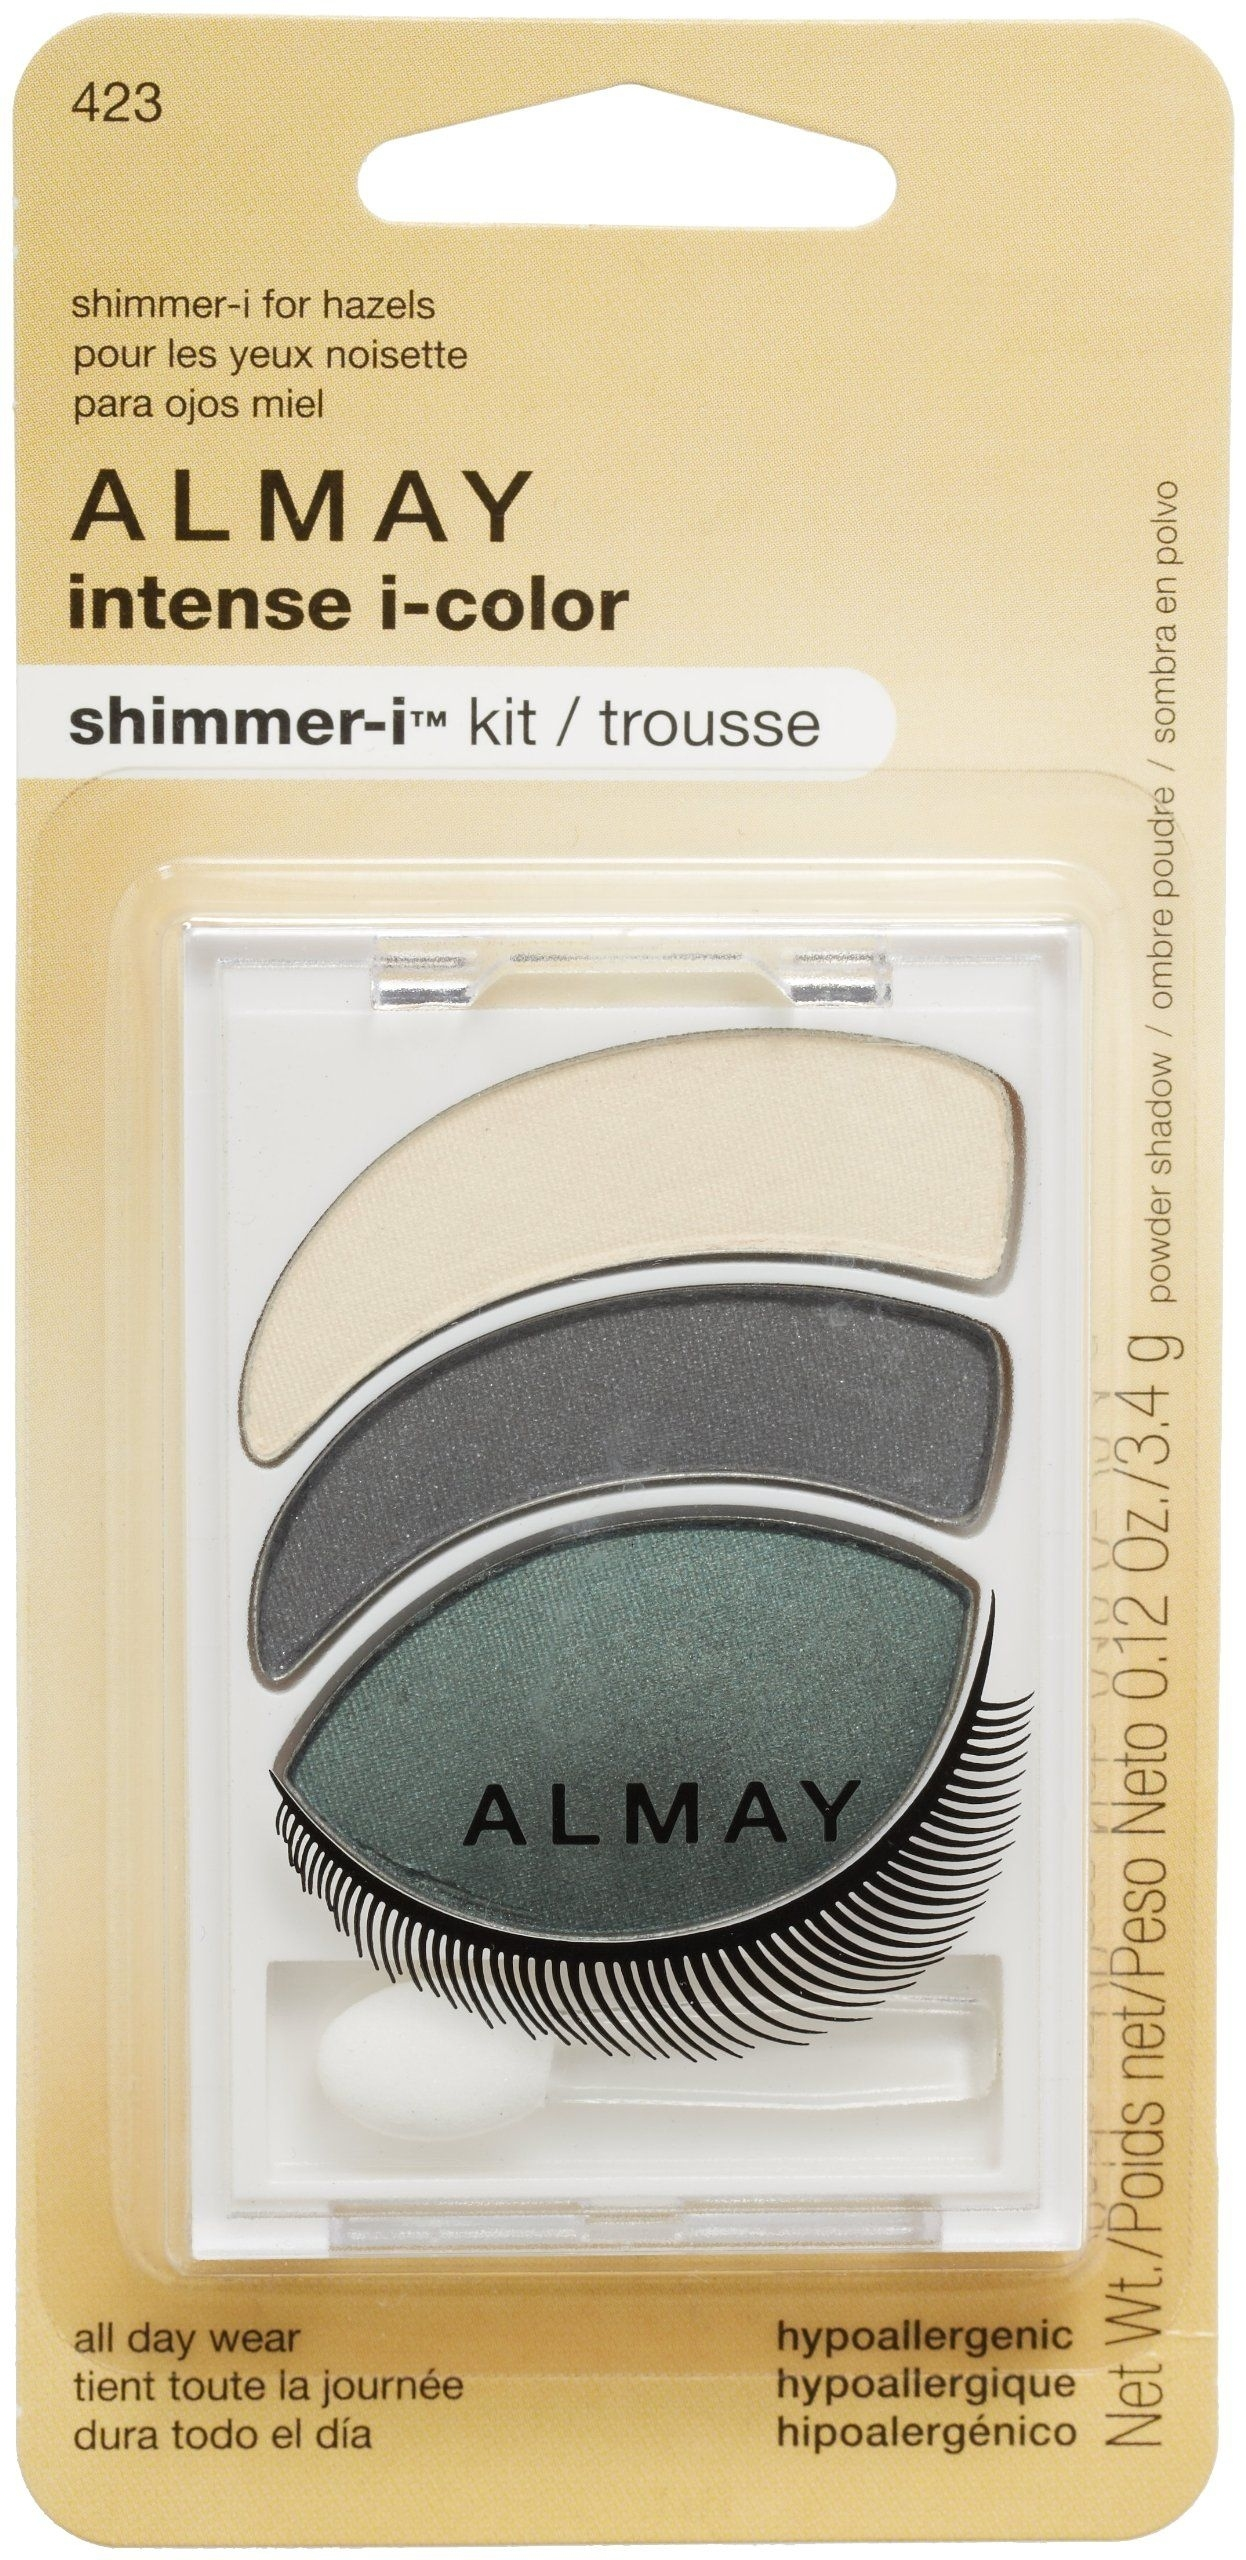 Almay Intense Icolor Shimmeri Kit Hazel >>> Details Can Be regarding Almay Intense I-Color For Hazel Eyes